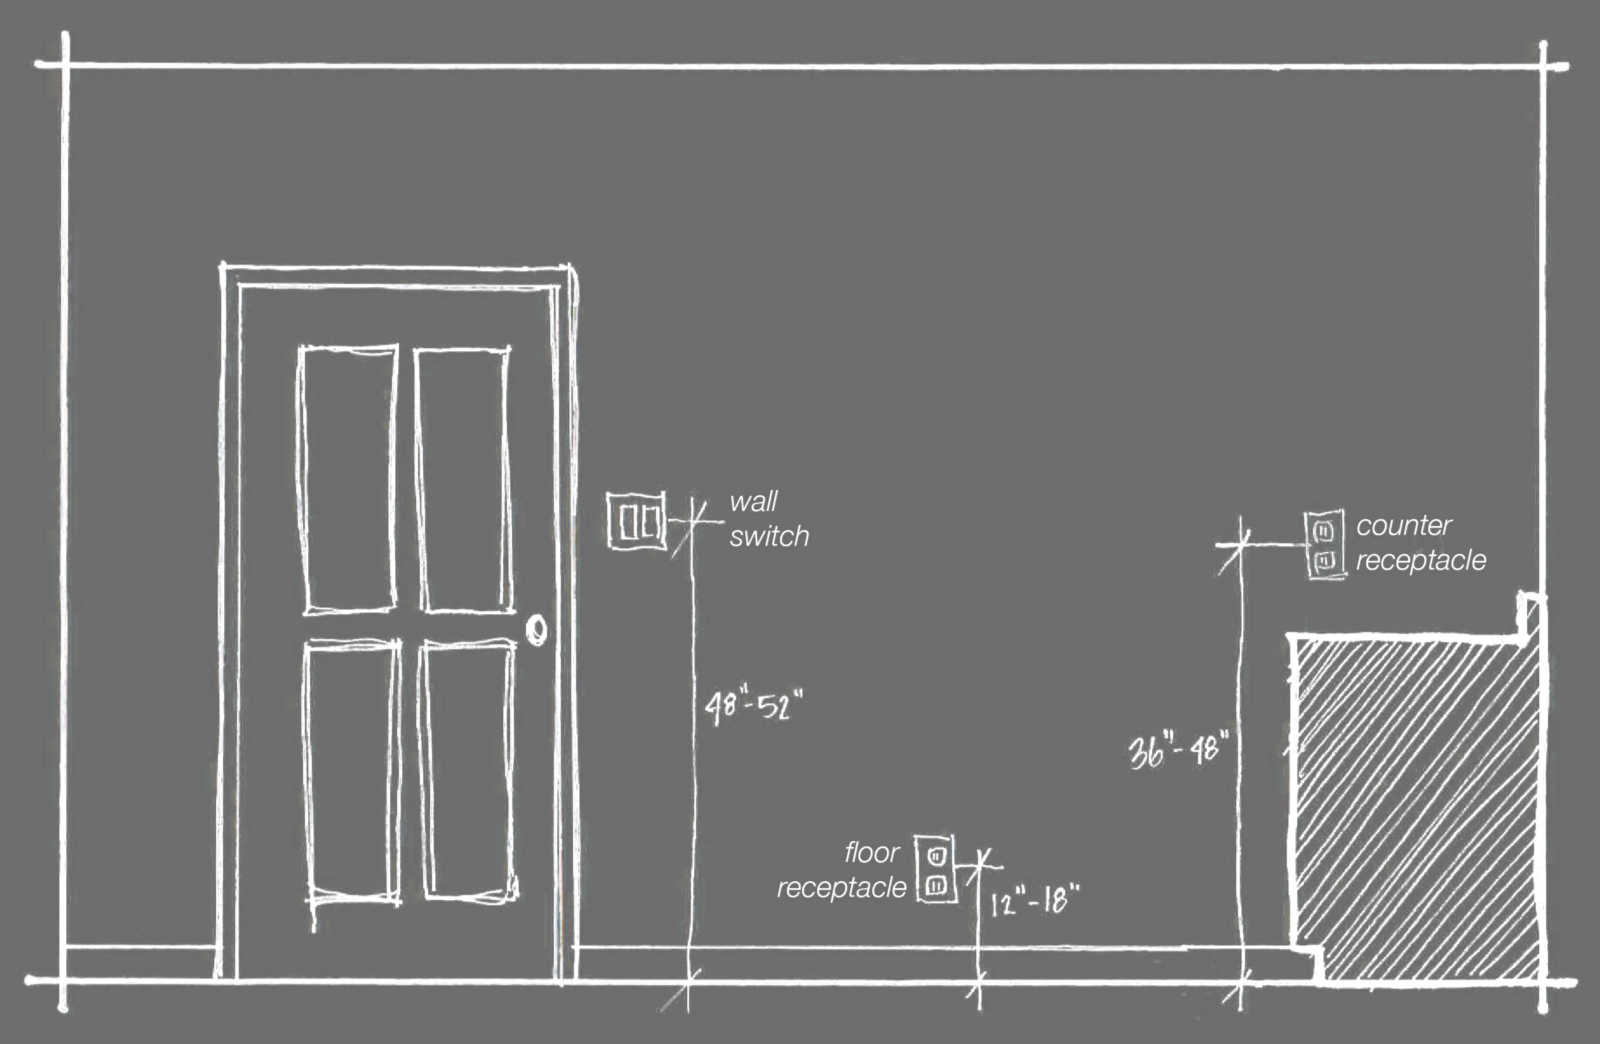 What is the required minimum height AFF of a electrical wall outlet